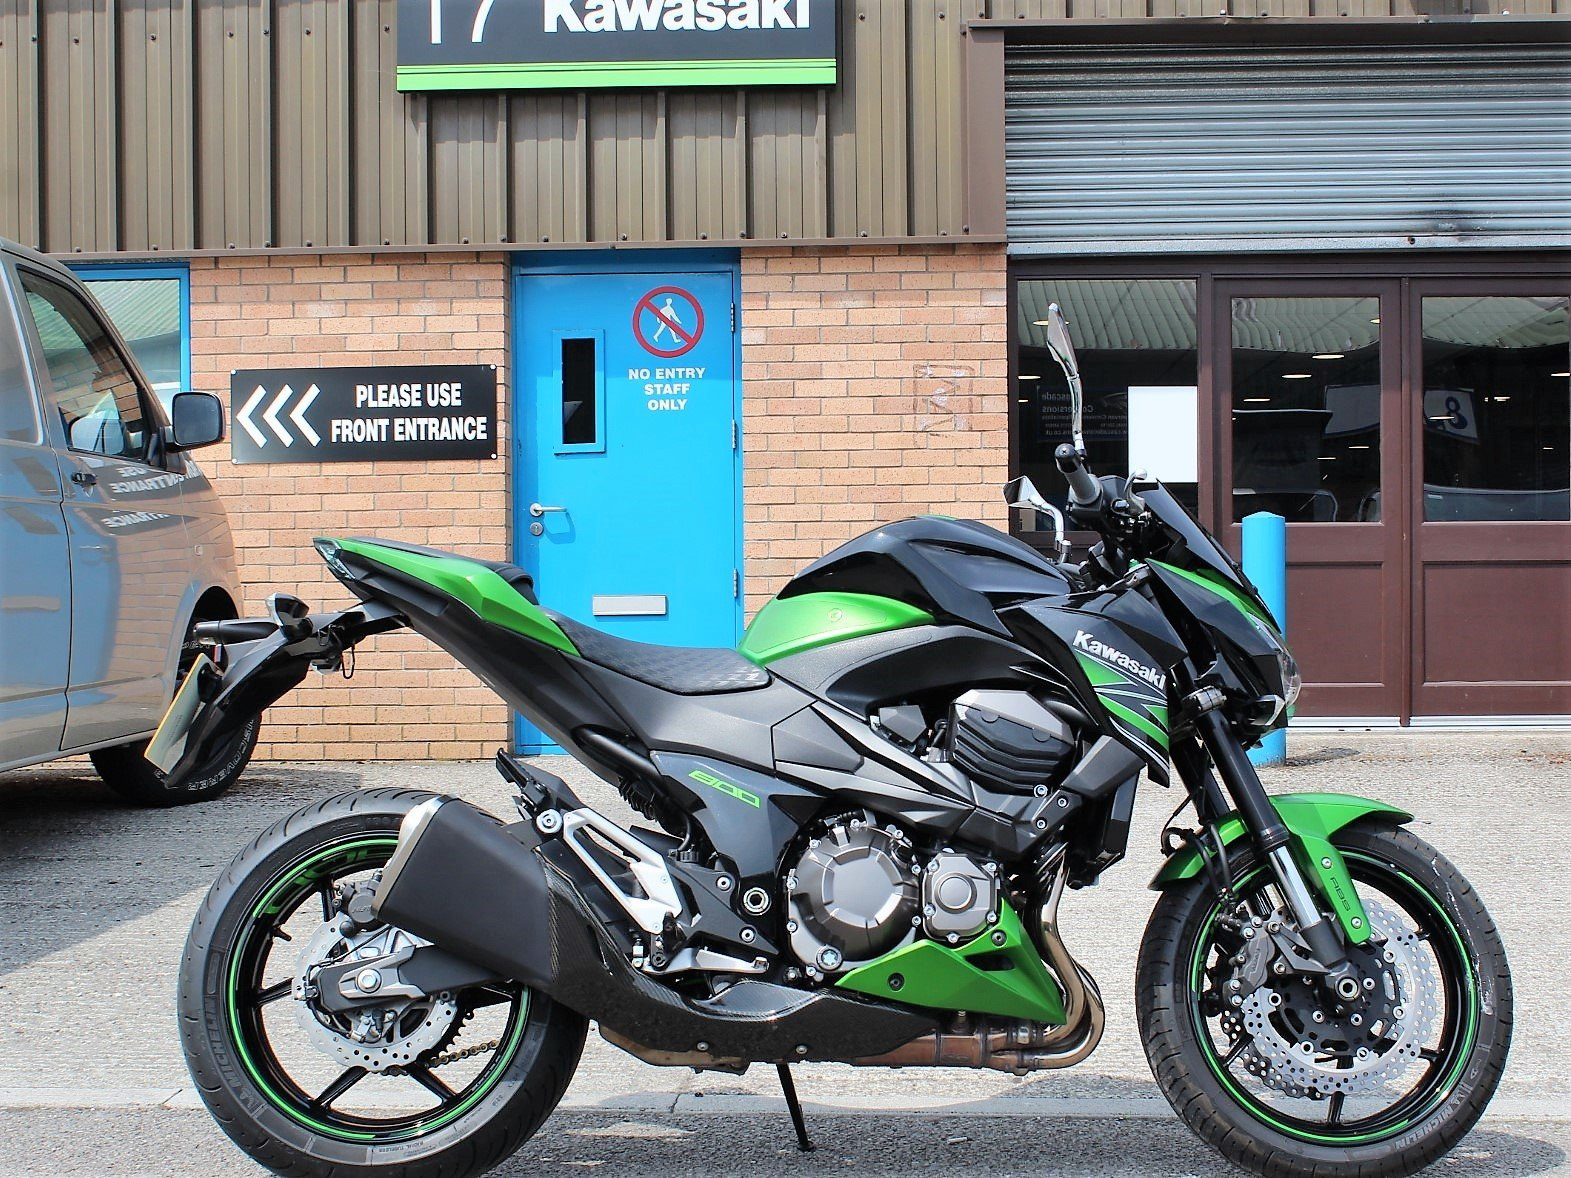 2015 15 Kawasaki Z800 ABS Naked Roadster For Sale (picture 1 of 6)